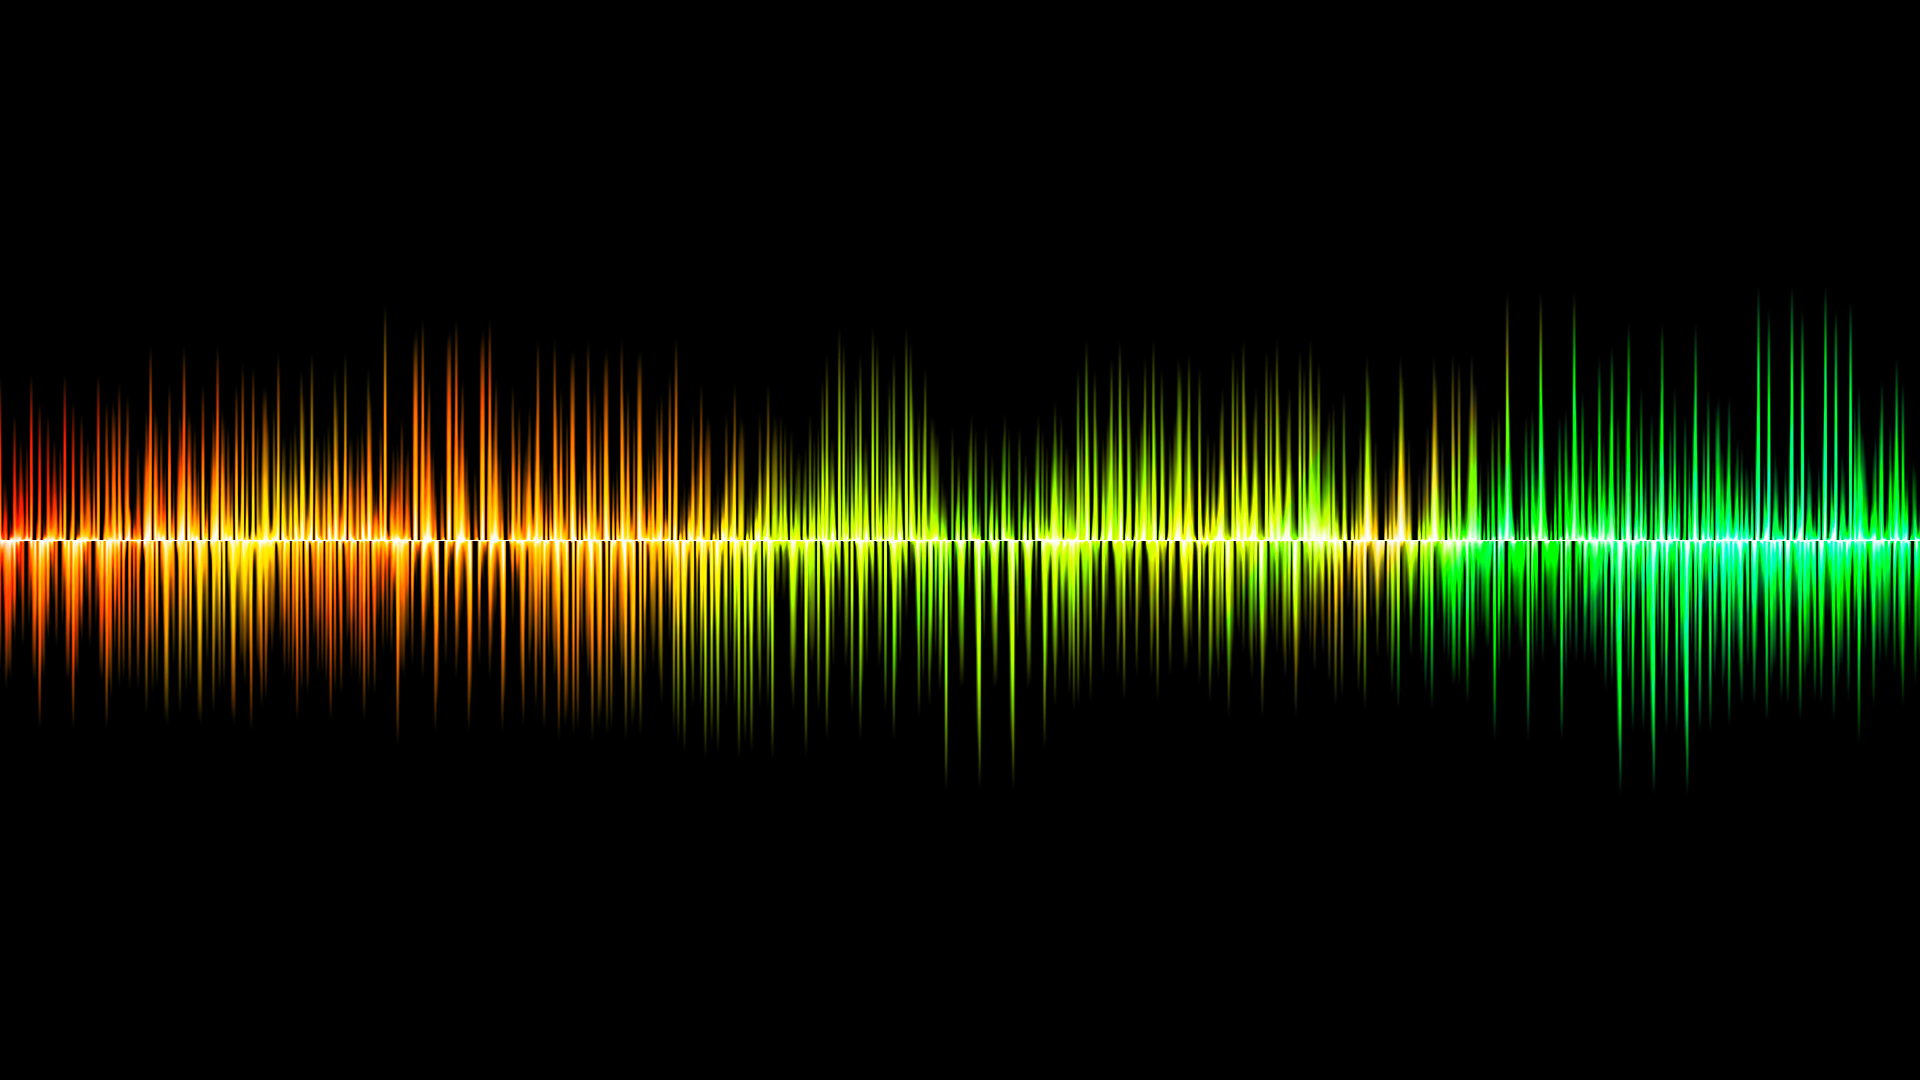 Speech Synthesis as a Service - Towards Data Science